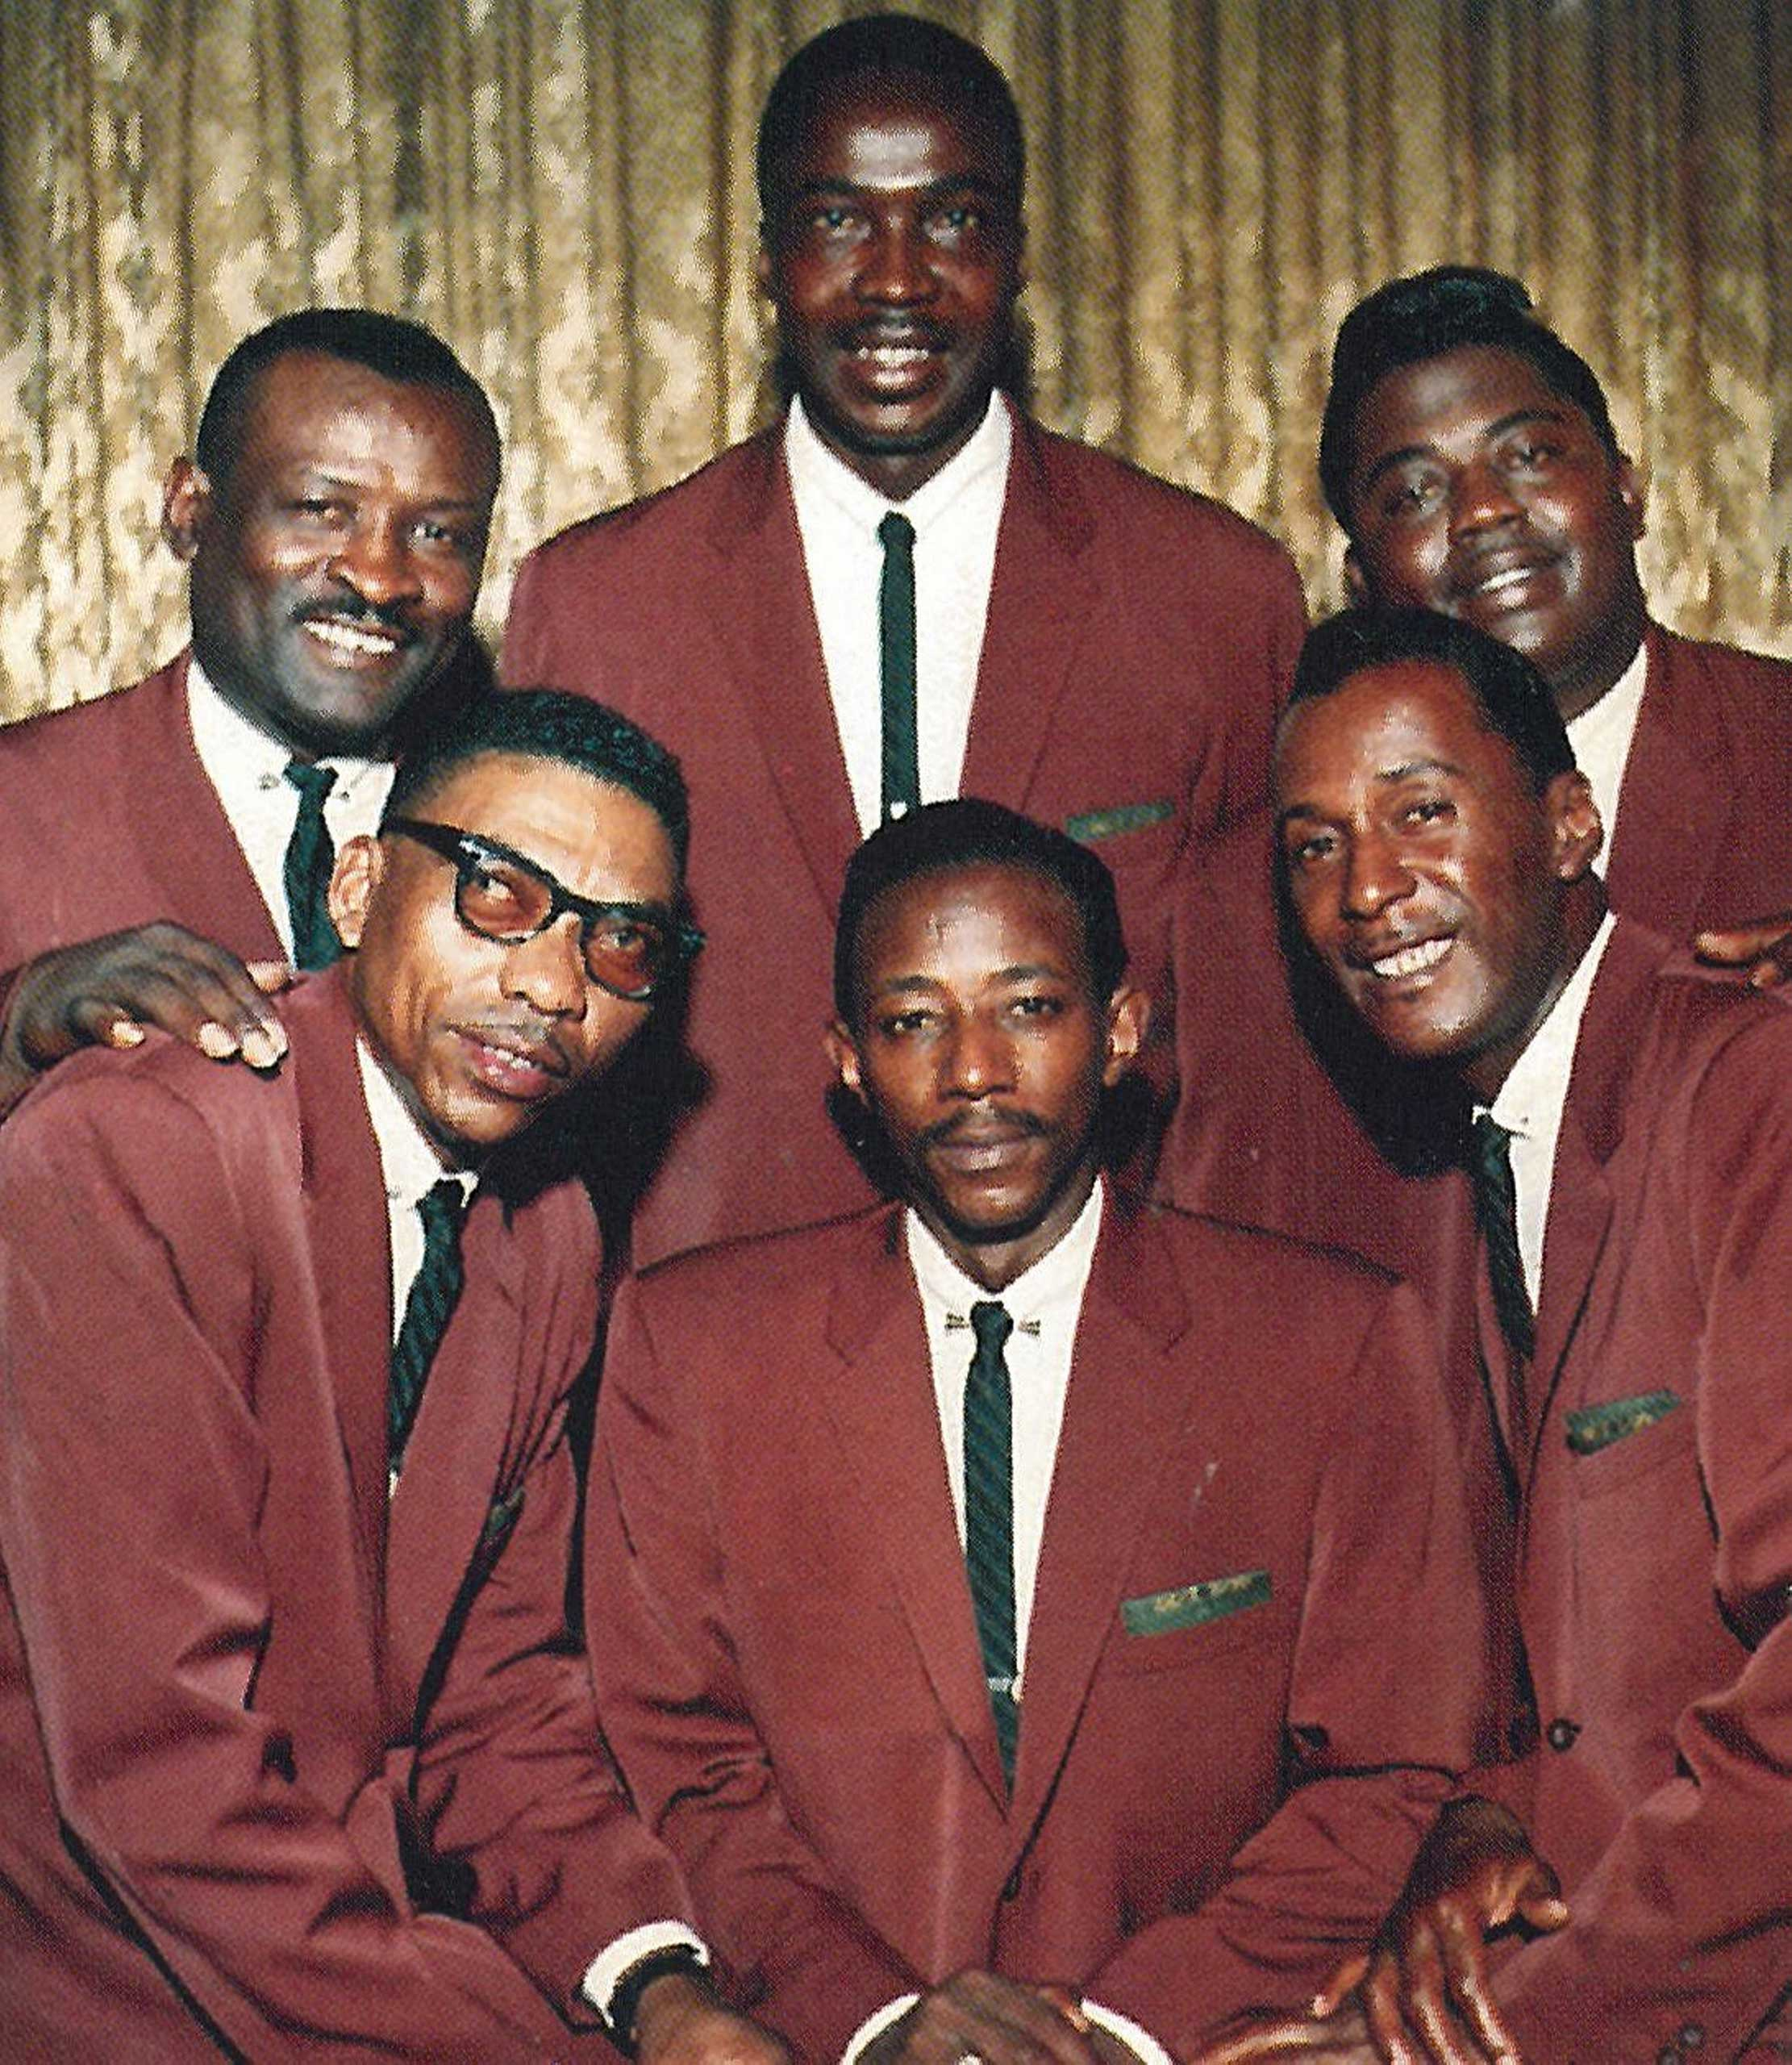 """The 1959 recording of the gospel classic """"Mary Don't You Weep"""" broke new ground musically and became an anthem of the civil rights movement. (Vee-Jay Records/Library of Congress)"""